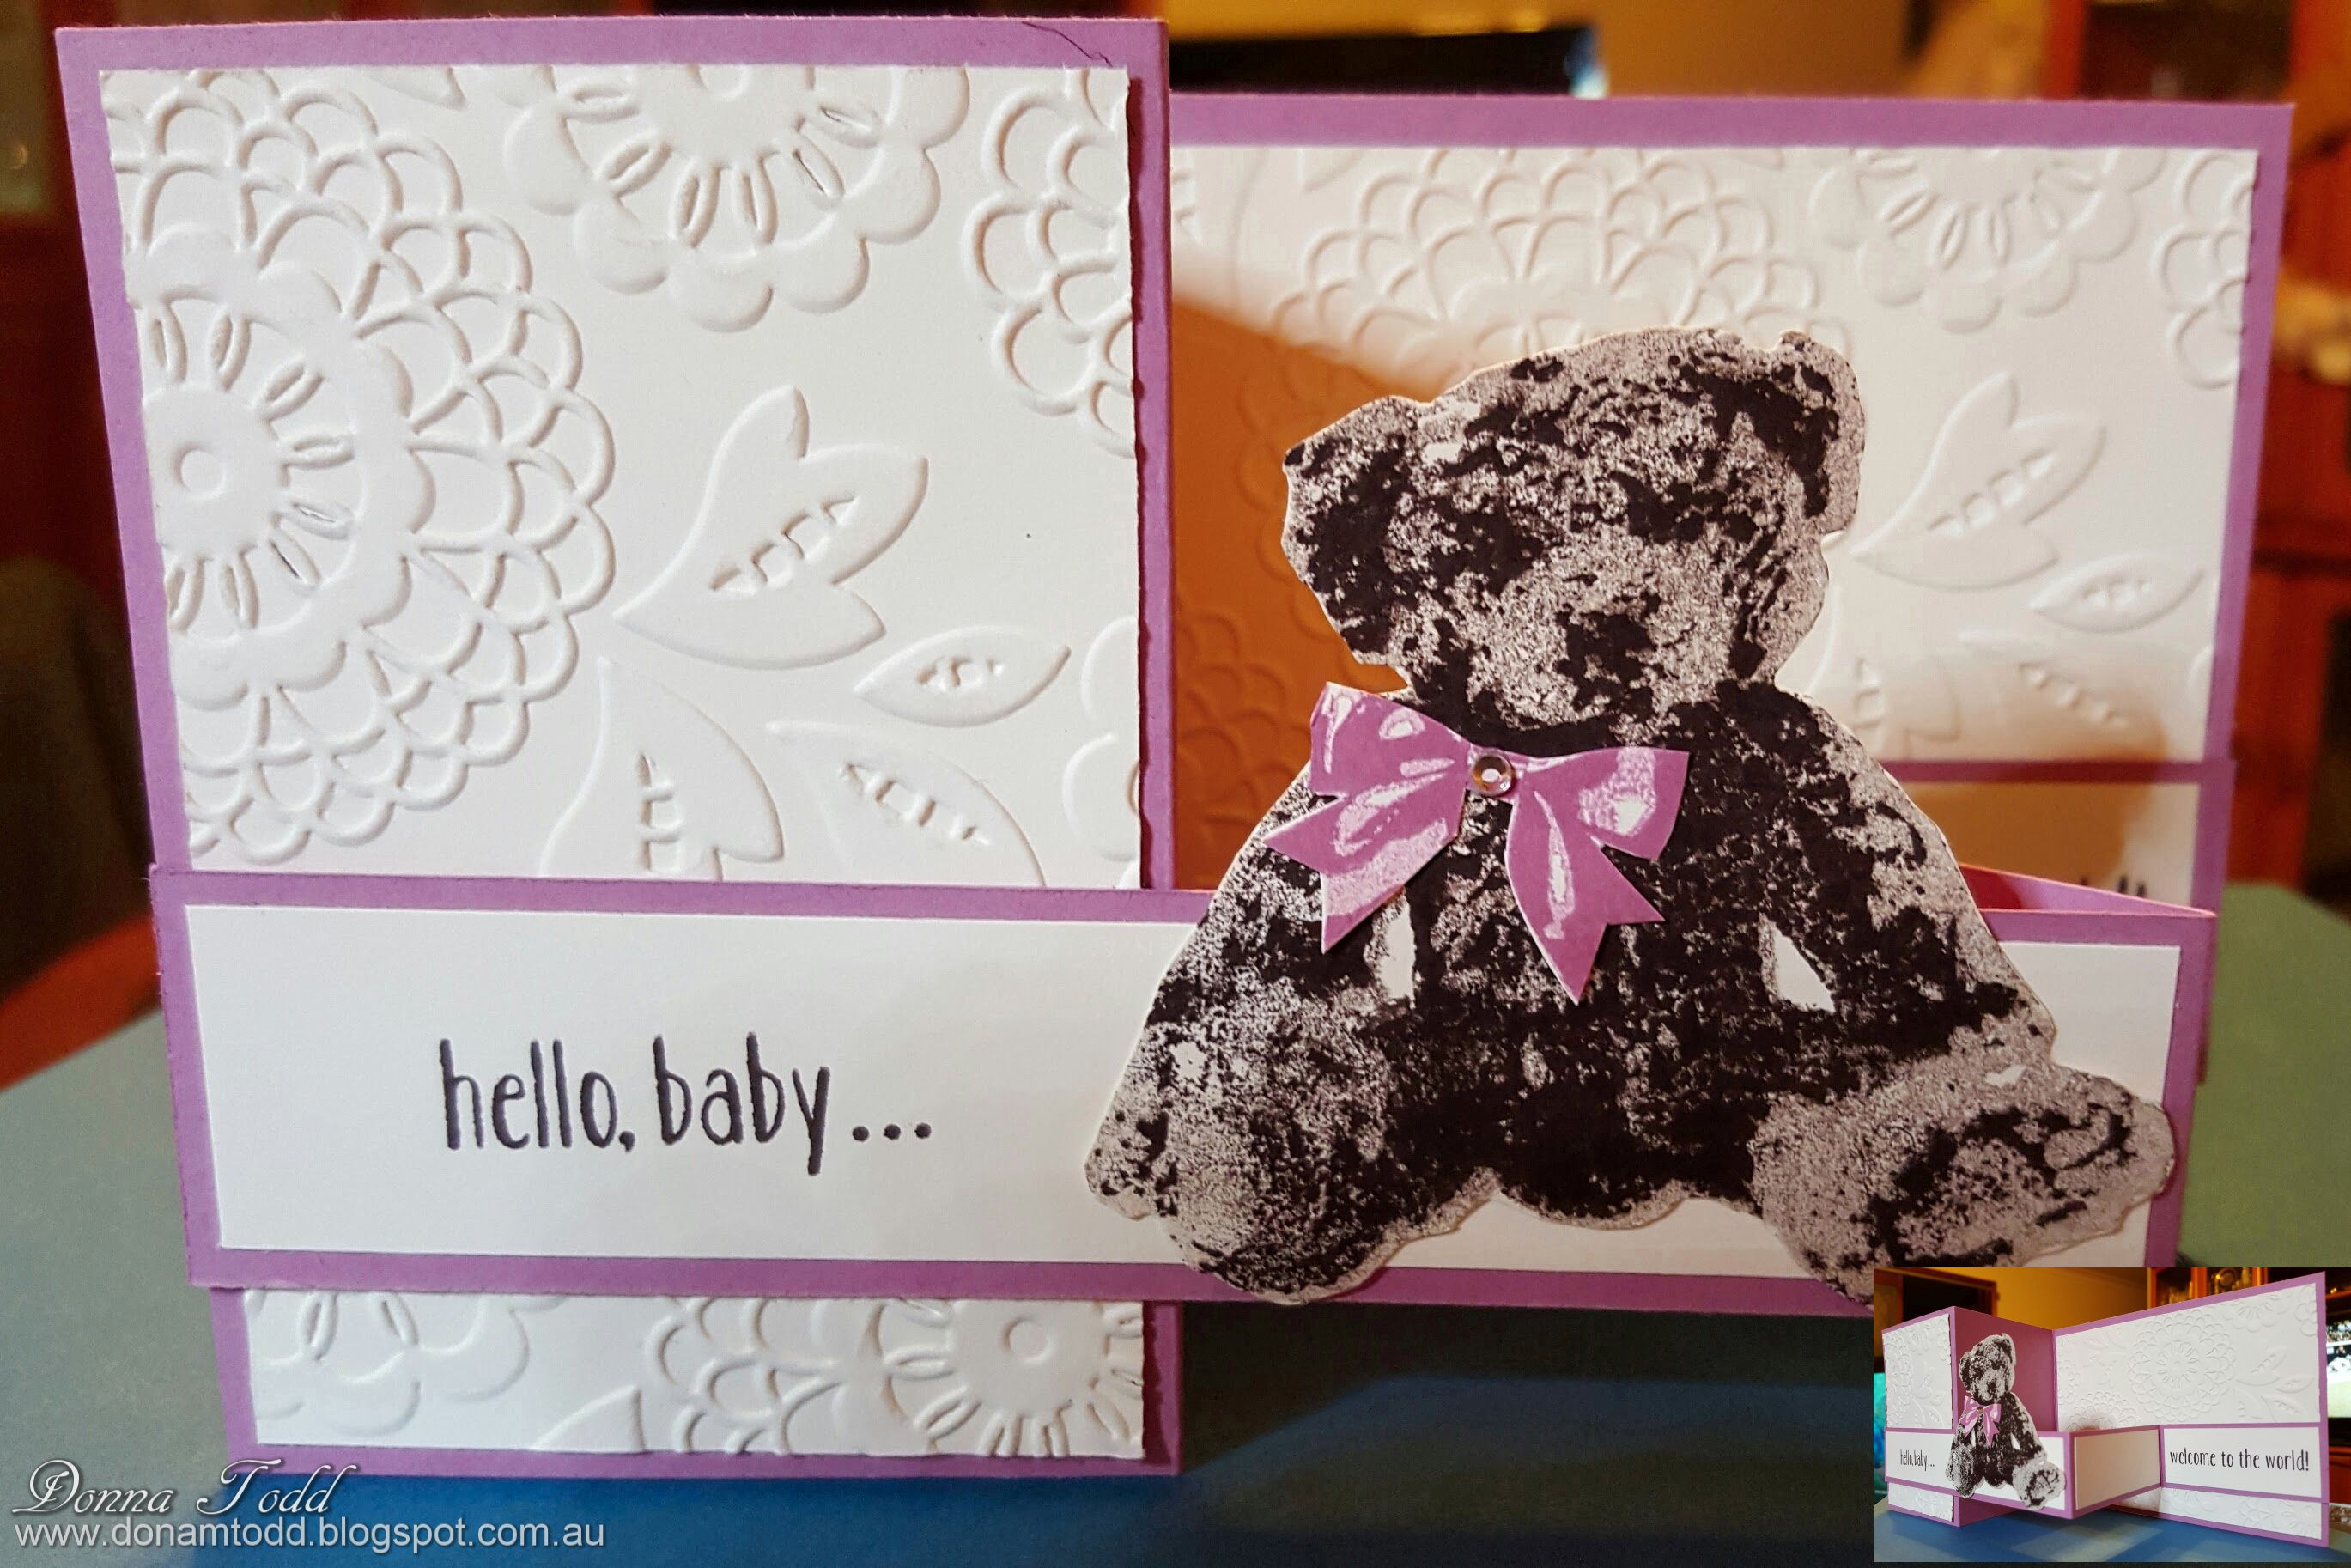 Card I made using the Baby Bear Stamp set from Stampin' Up! http://donnamtodd.blogspot.com.au/2016/06/baby-bear-z-fold-card.html